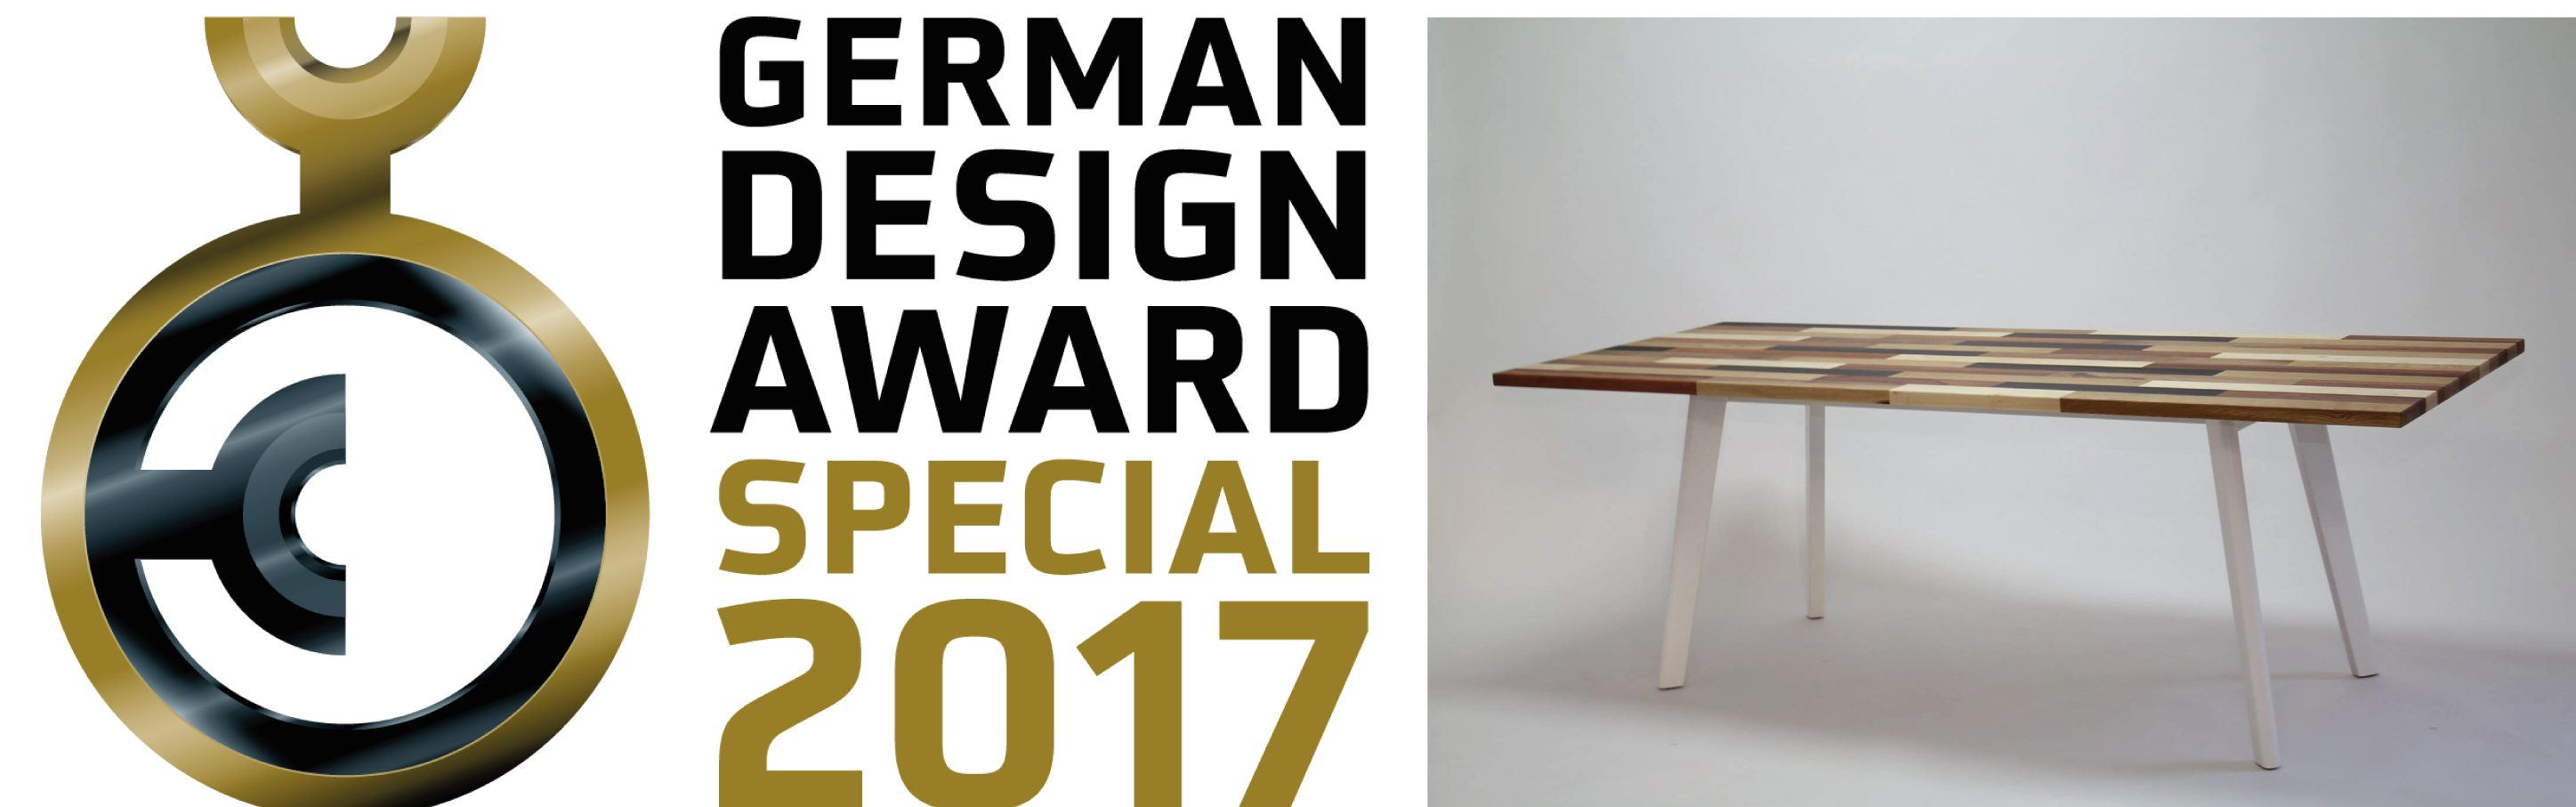 german design award special 2017 schreinerei wohlschiess. Black Bedroom Furniture Sets. Home Design Ideas